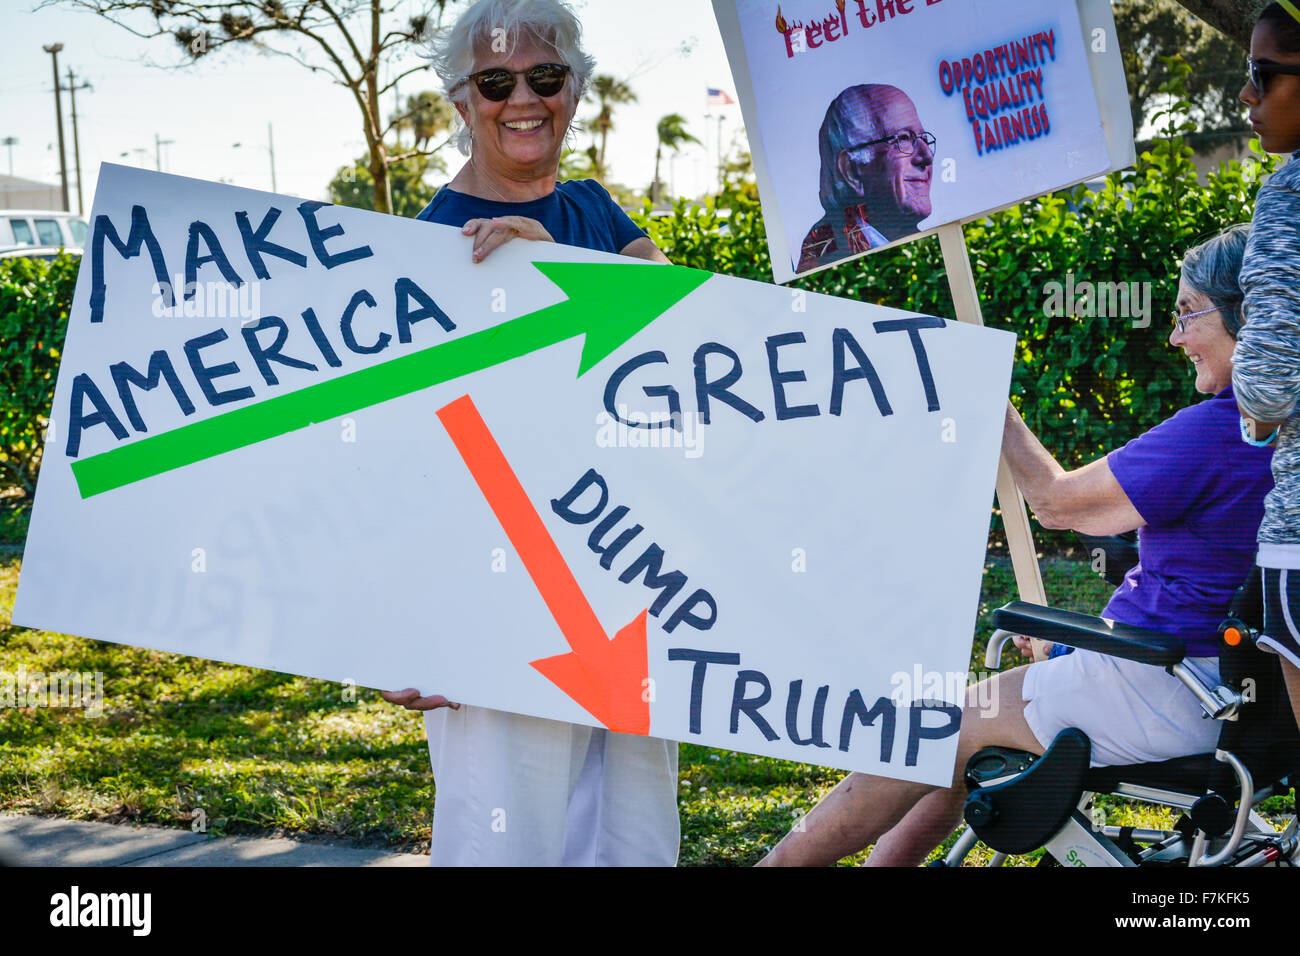 Protesters holding signs denouncing Donald Trump at a political rally for Trump in Sarasota, FL - Stock Image